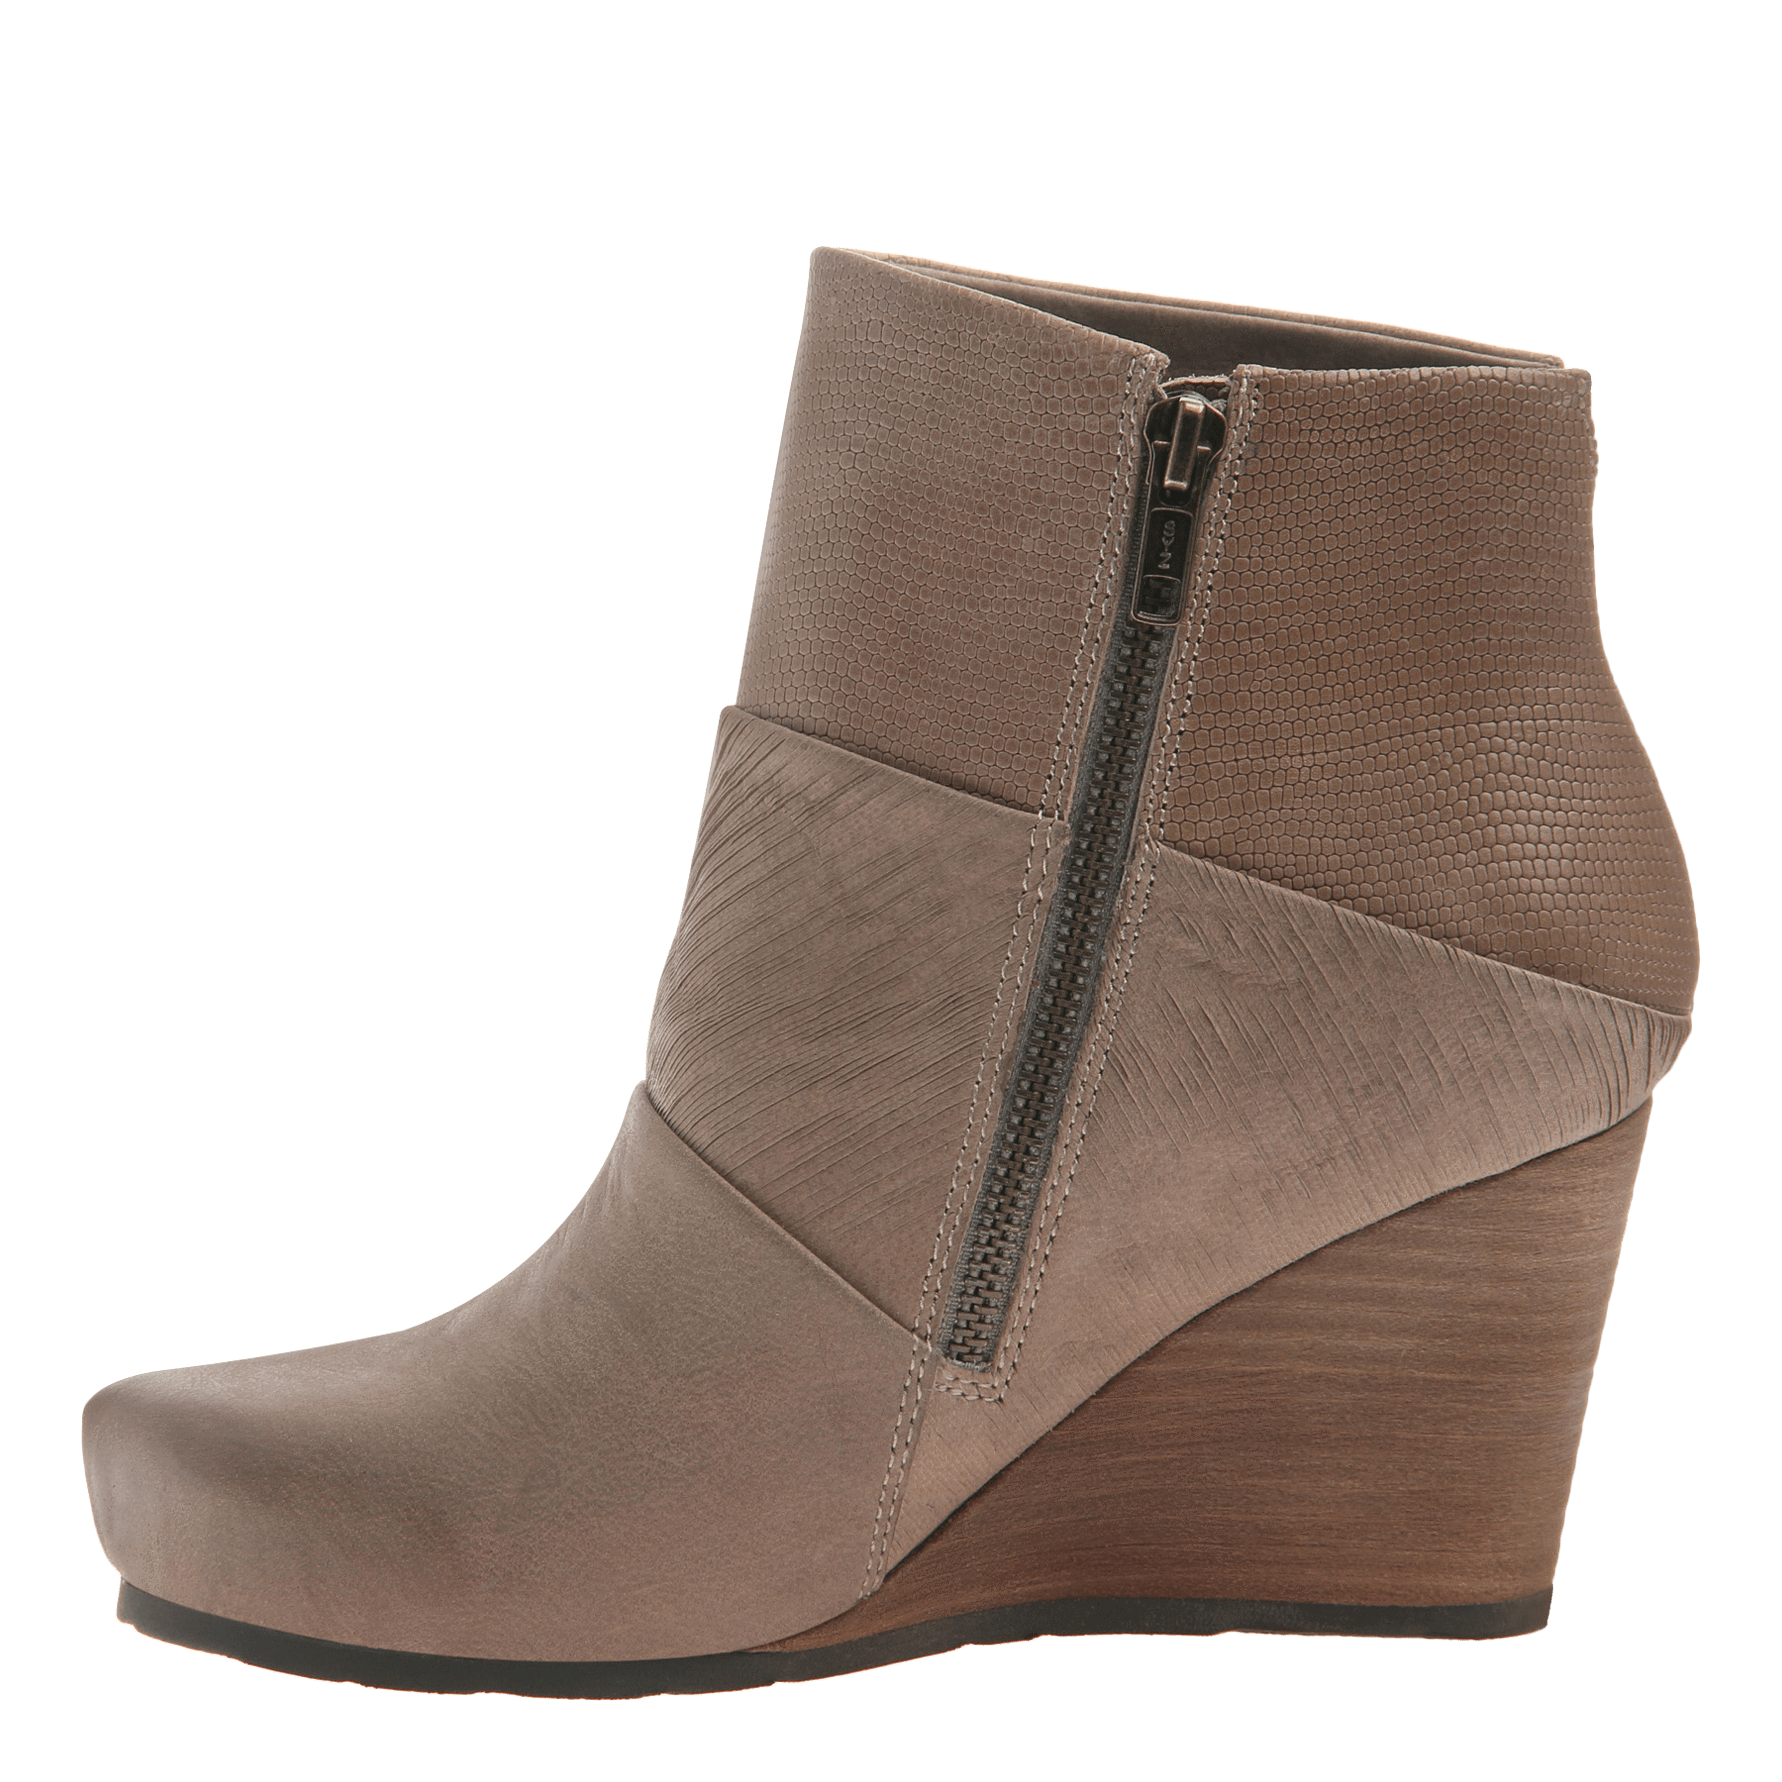 Womens boots png. Dharma in pecan ankle